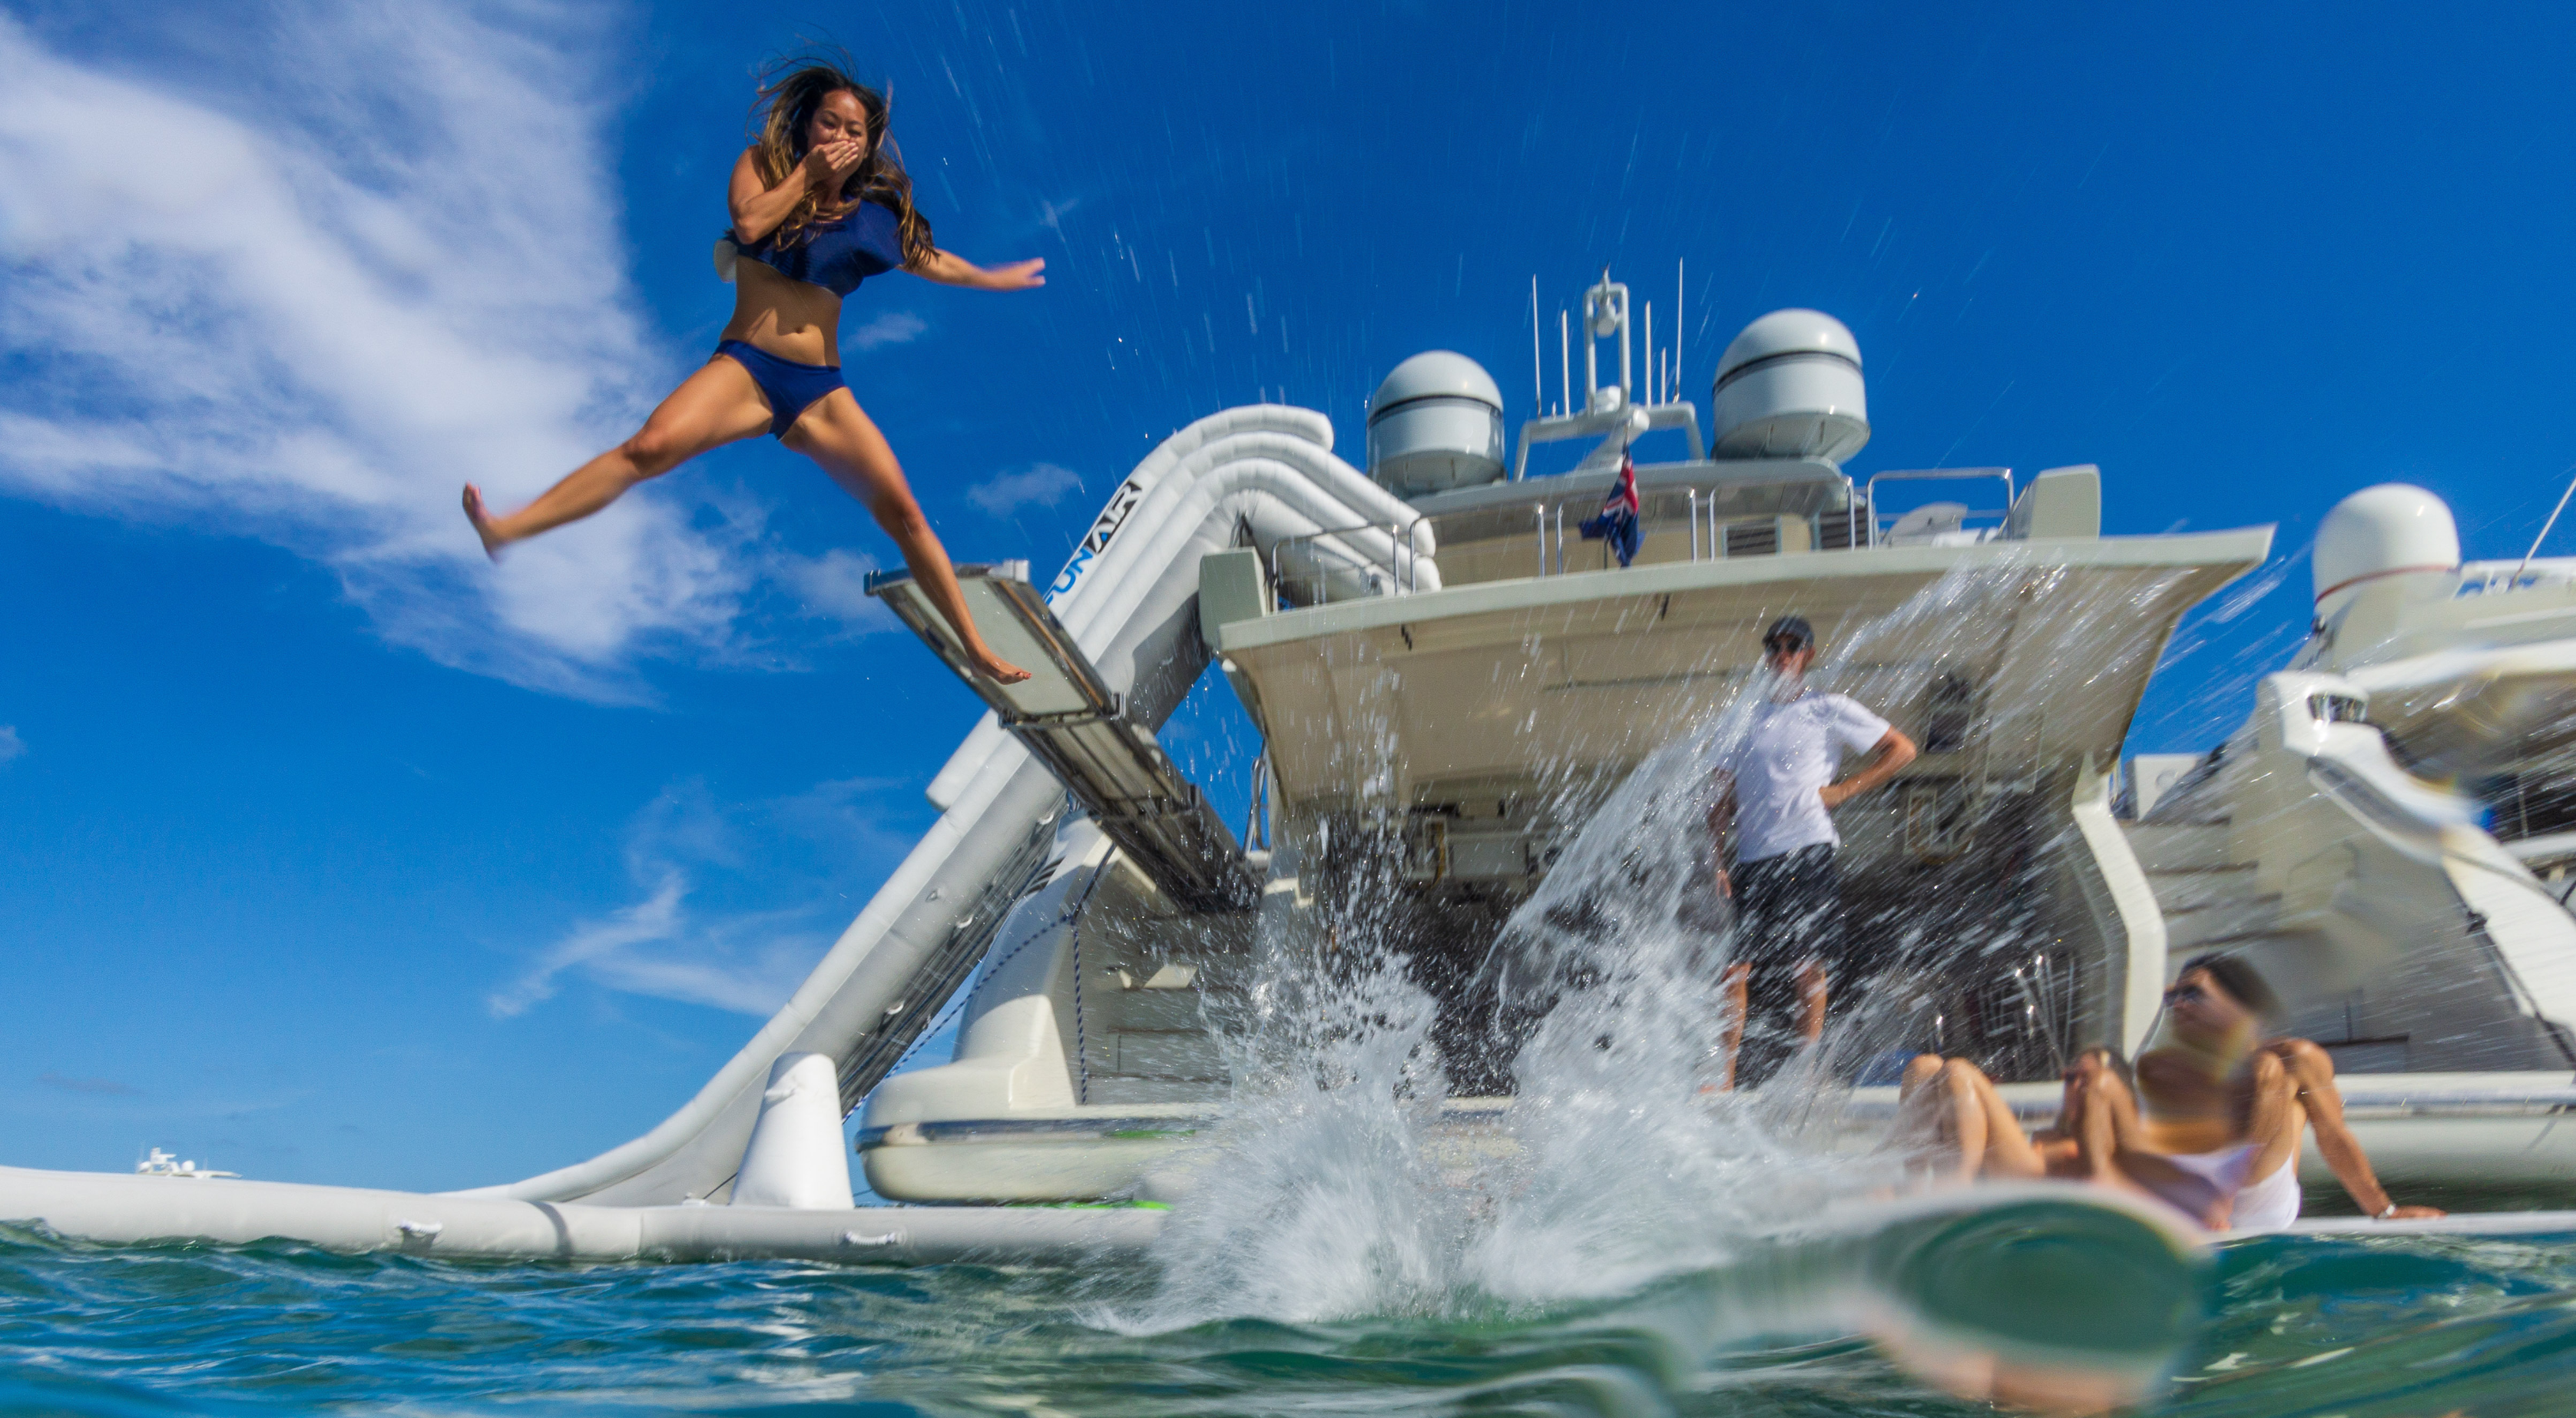 Dare to be different this spring break on board the 86' Aicon!